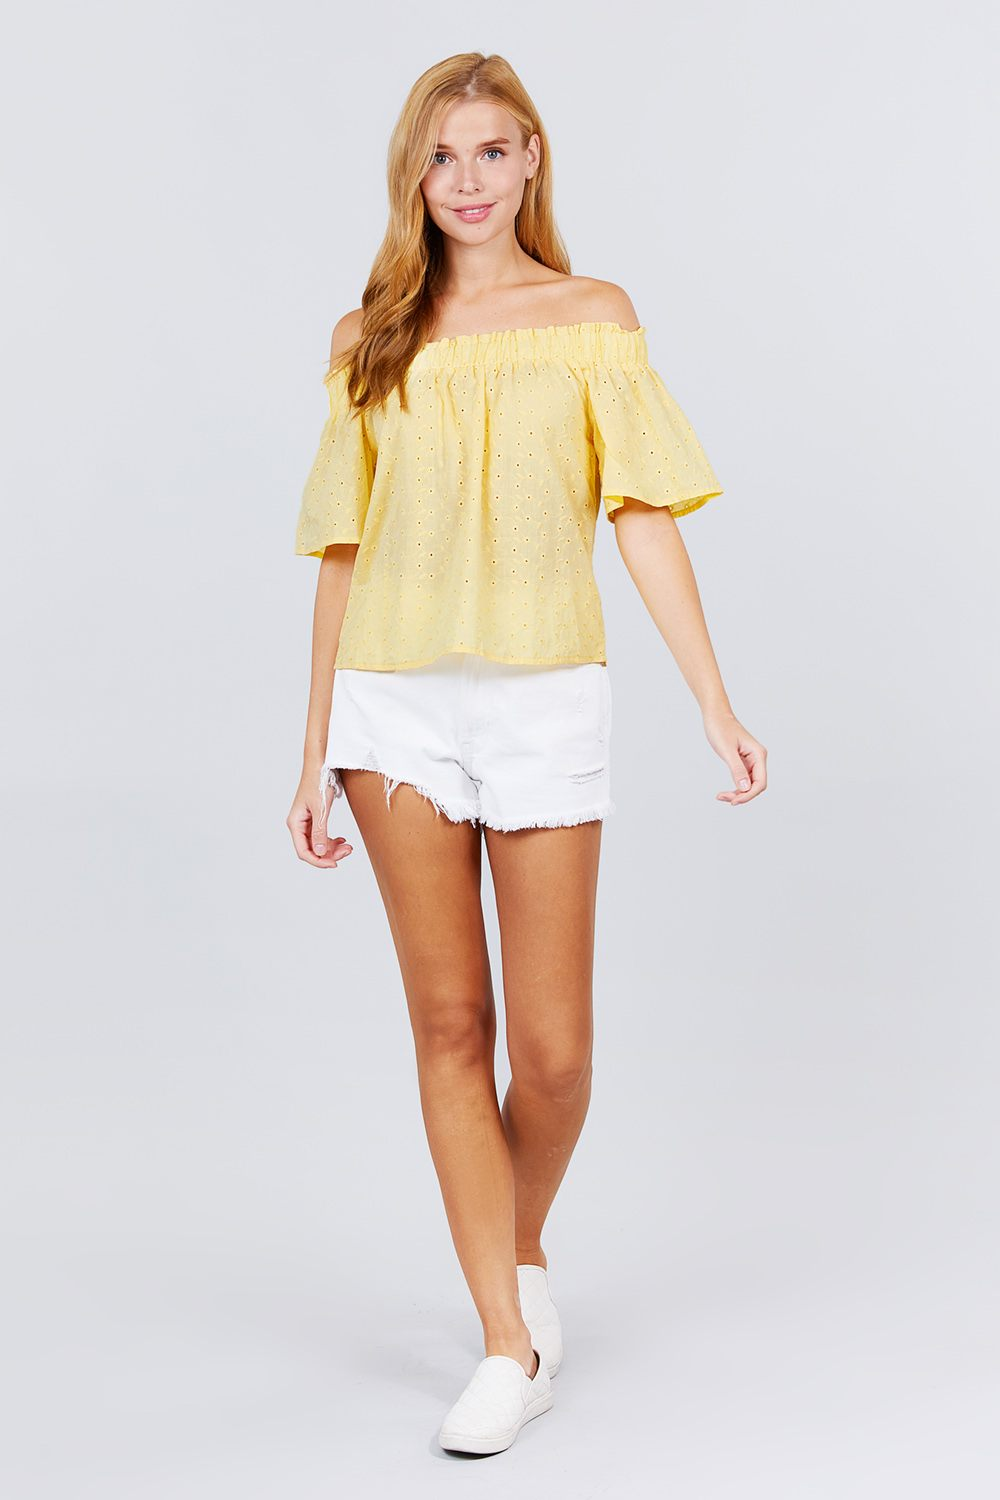 Short Sleeve Off The Shoulder Eyelet Woven Top - Absolute Fashion 2020